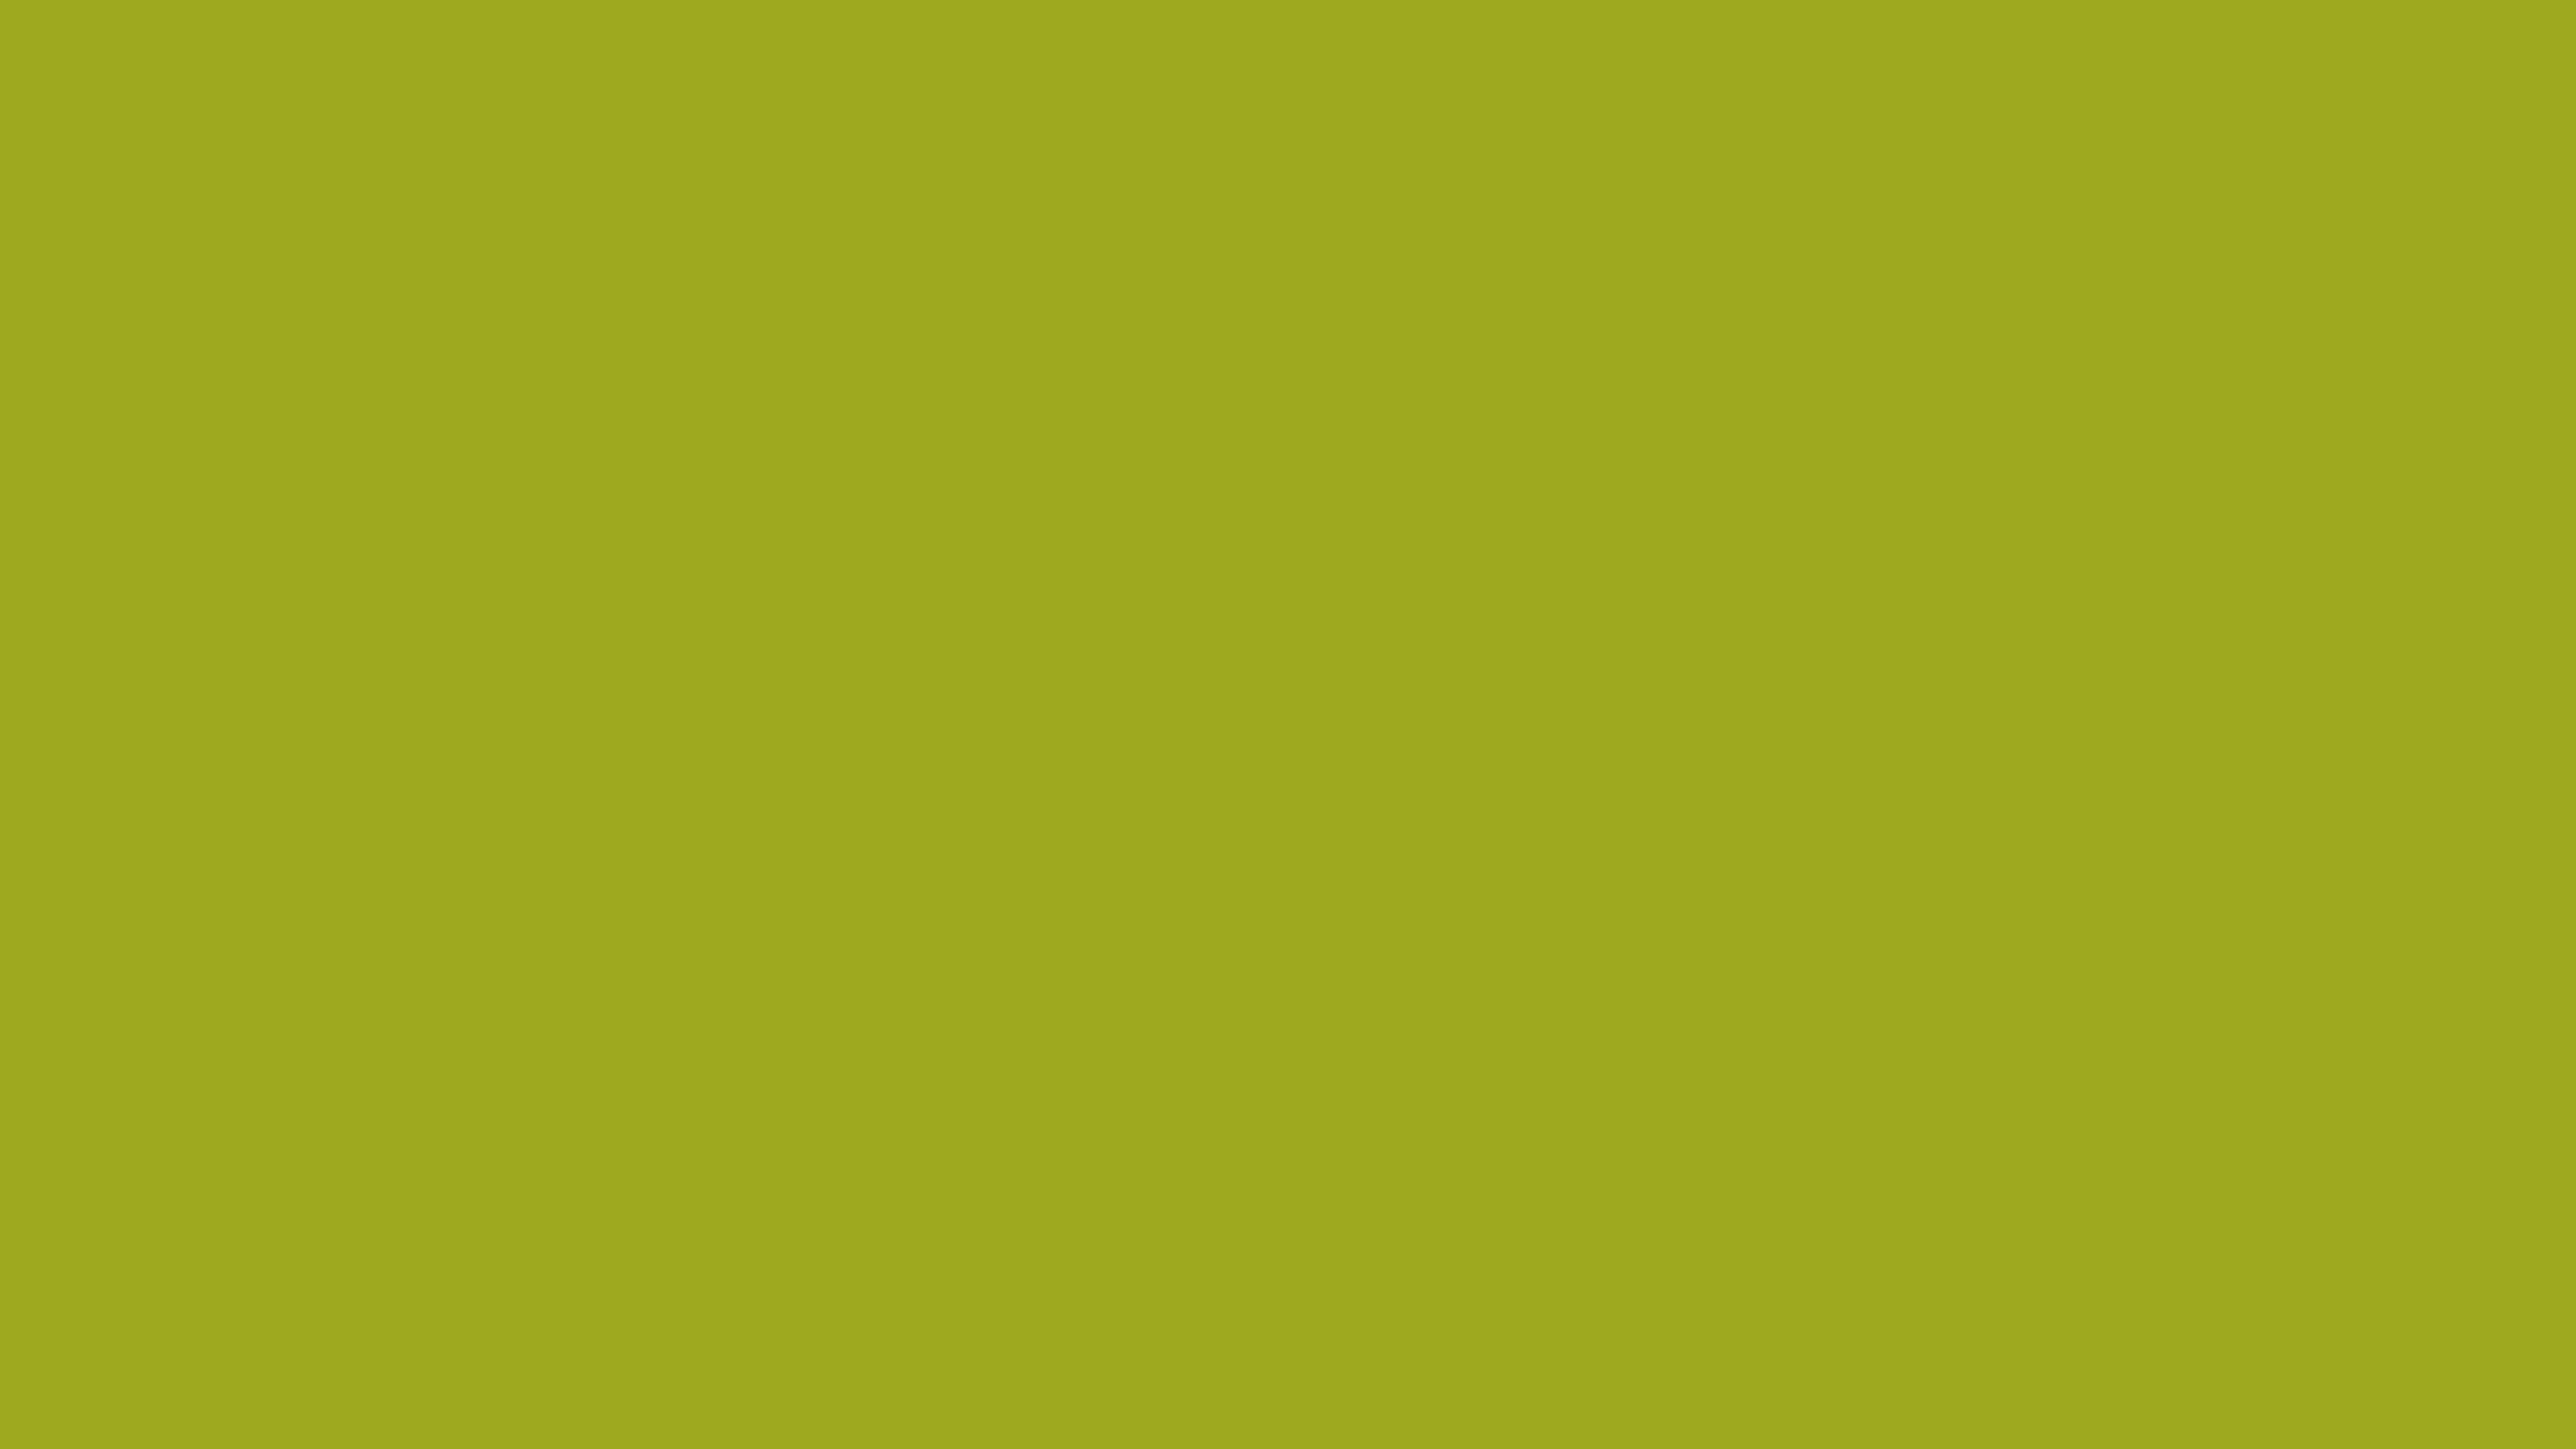 3840x2160 Citron Solid Color Background